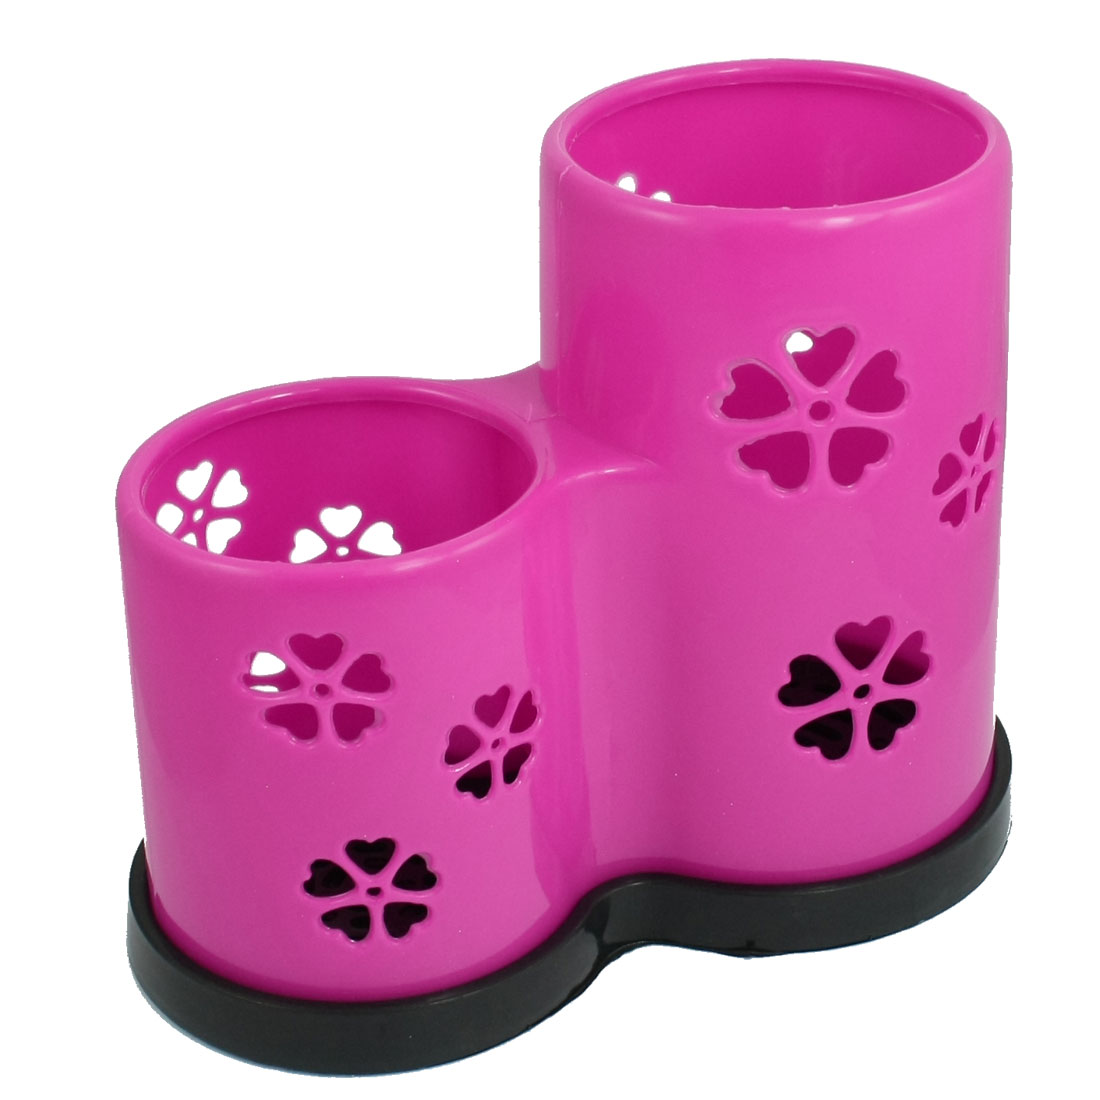 Magenta Round 2 Compartments Perforated Body Chopstick Holder Case